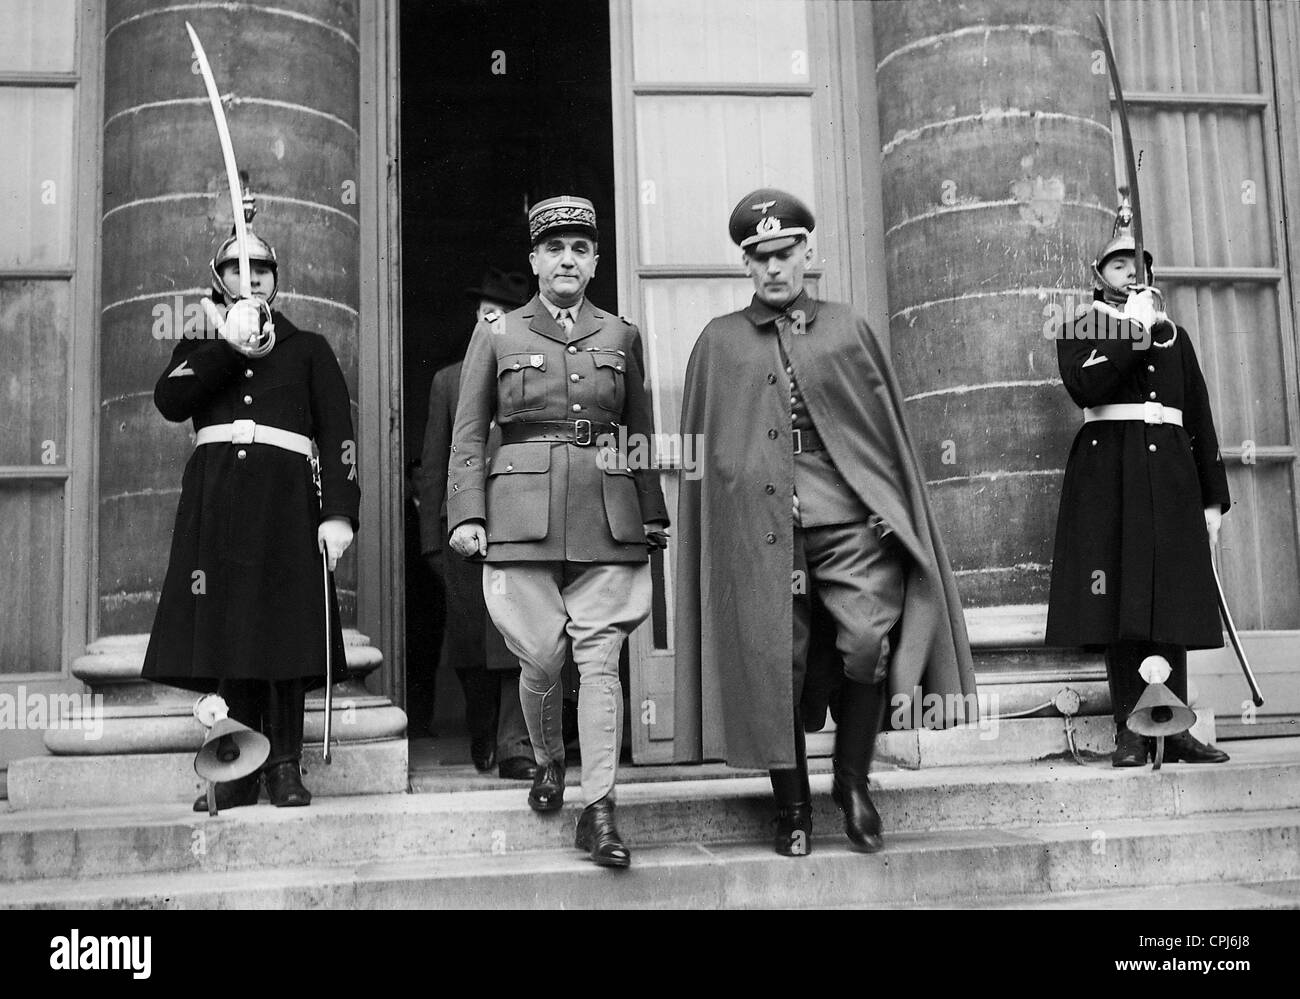 General de la Laurencie with Colonel Otzen, 1940 - Stock Image